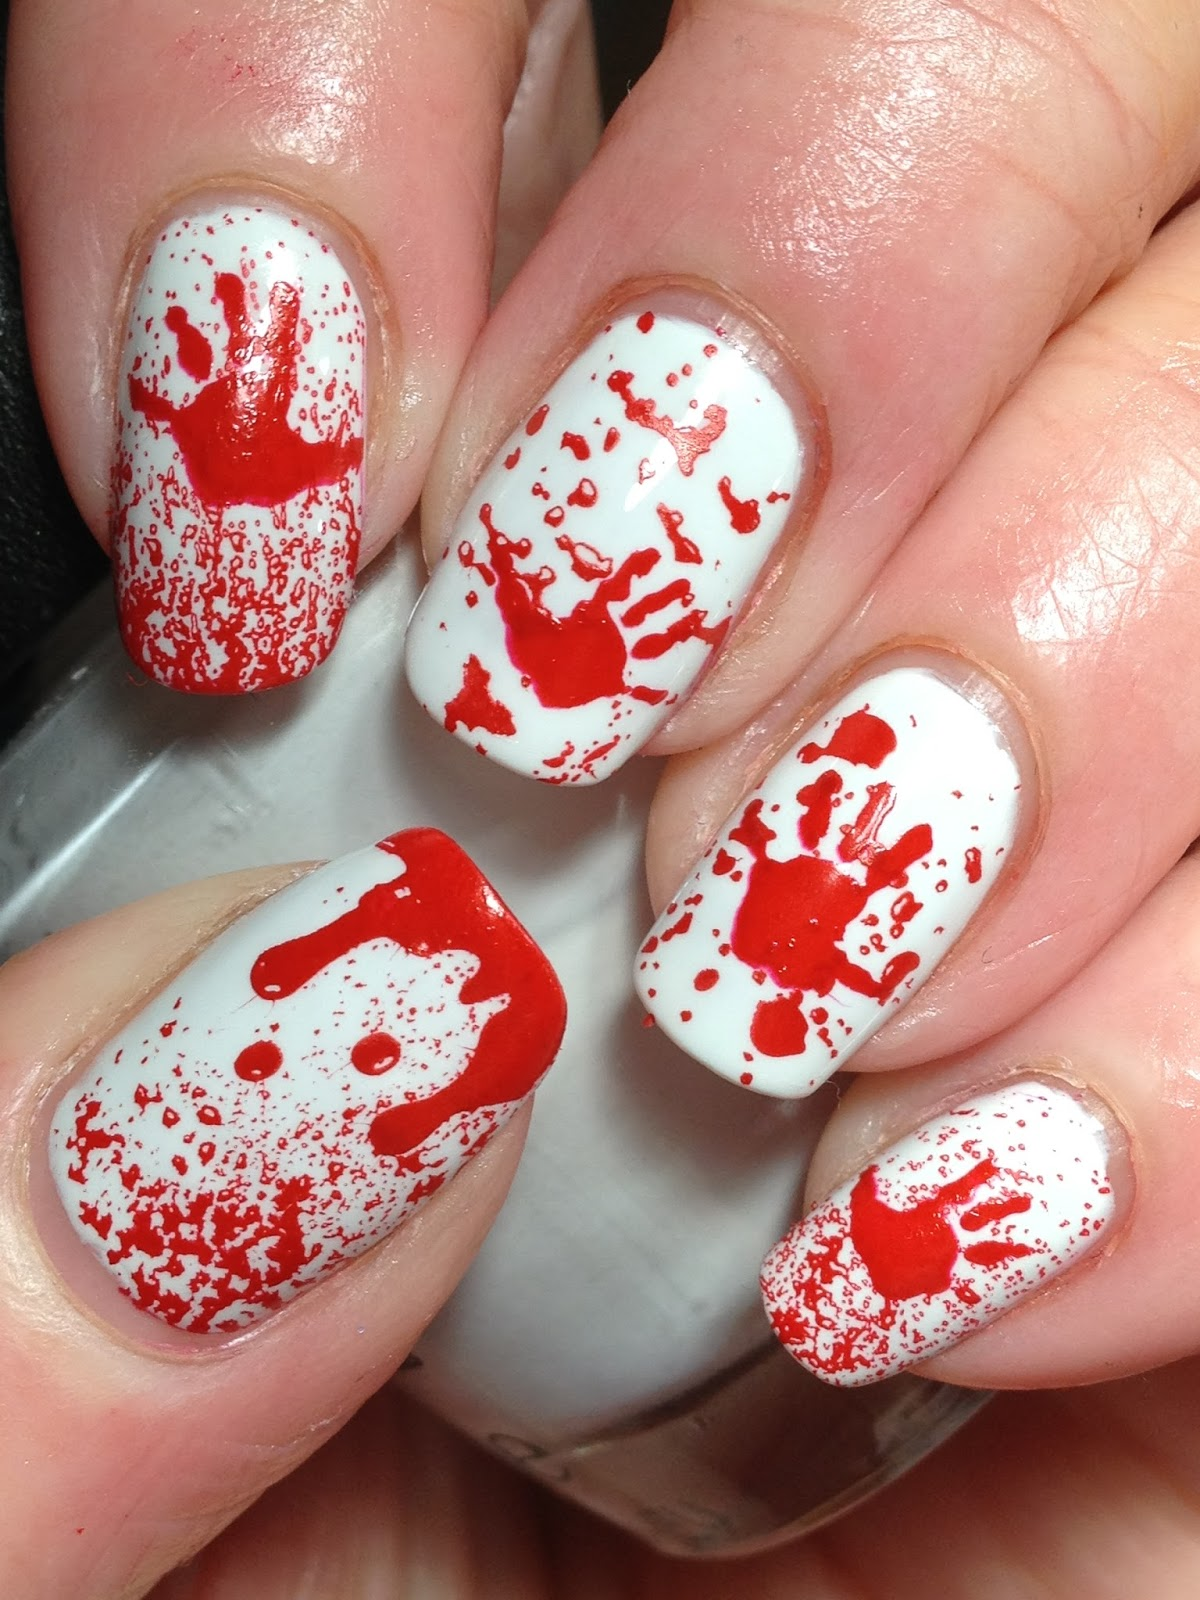 Canadian Nail Fanatic: Halloween Bloody Hands!